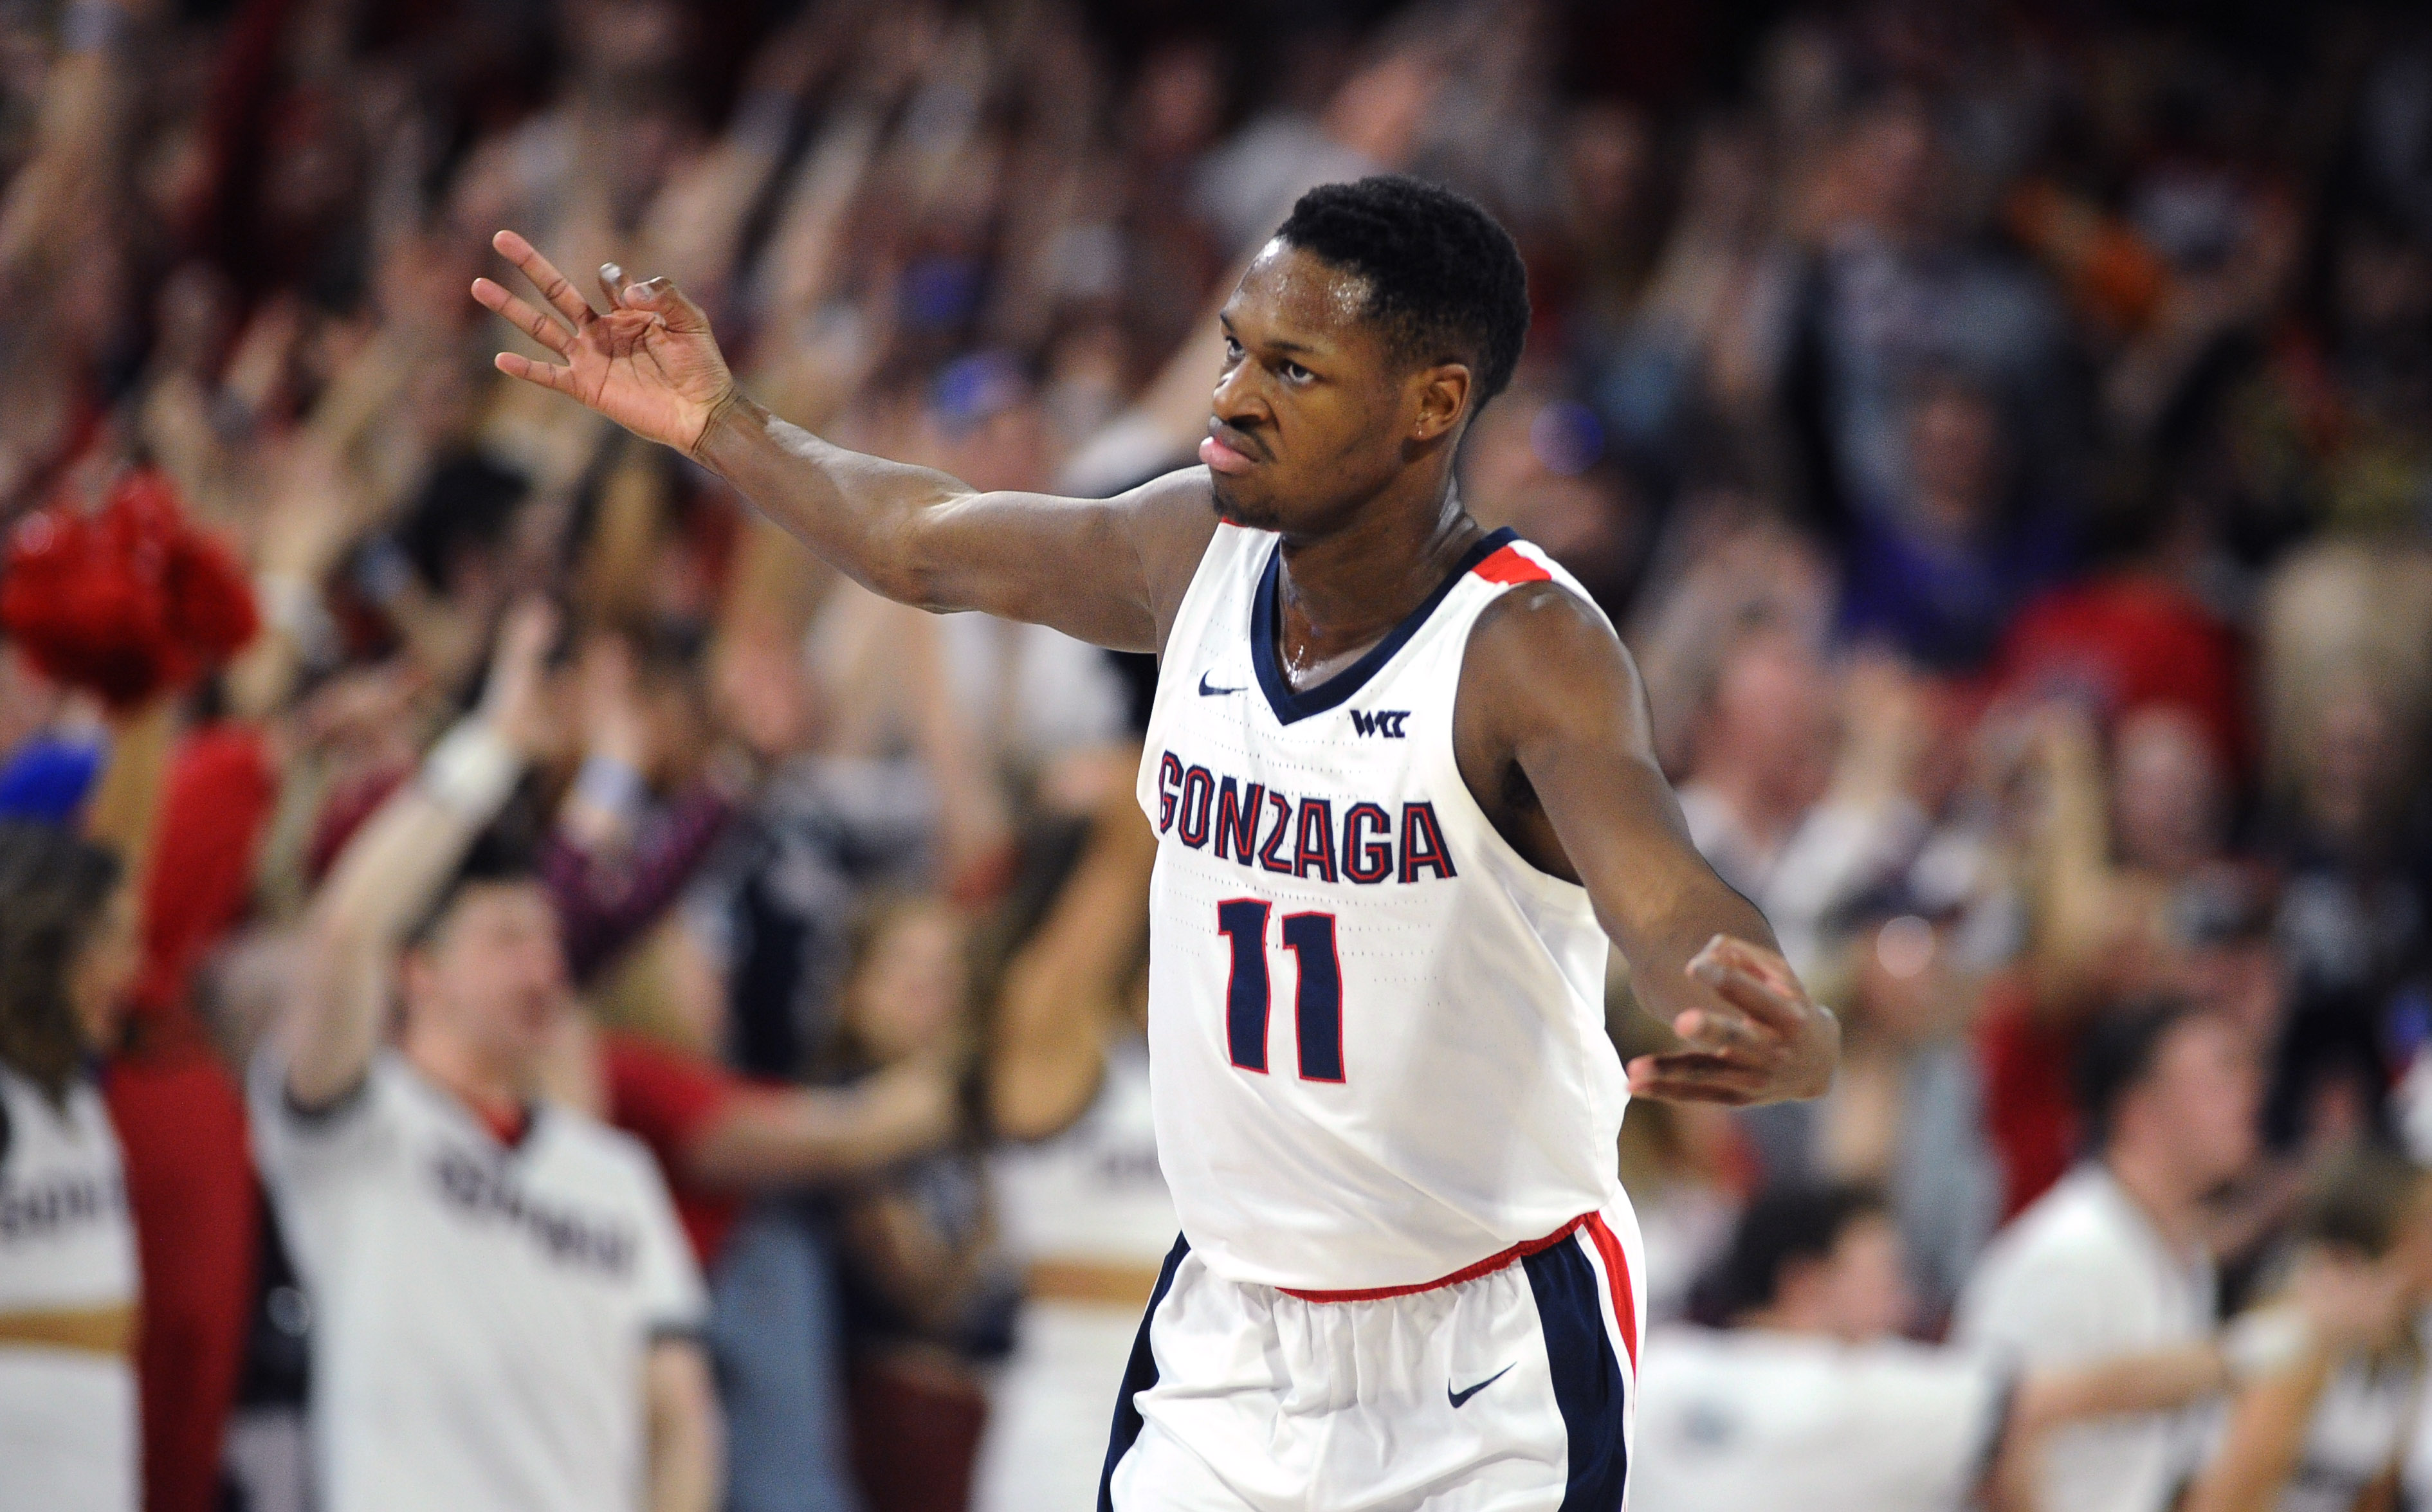 Feb 29, 2020; Spokane, Washington, USA; Gonzaga Bulldogs guard Joel Ayayi (11) celebrates a three-pointer against the St. Mary's Gaels in the second half at McCarthey Athletic Center. The Bulldogs won 86-76.